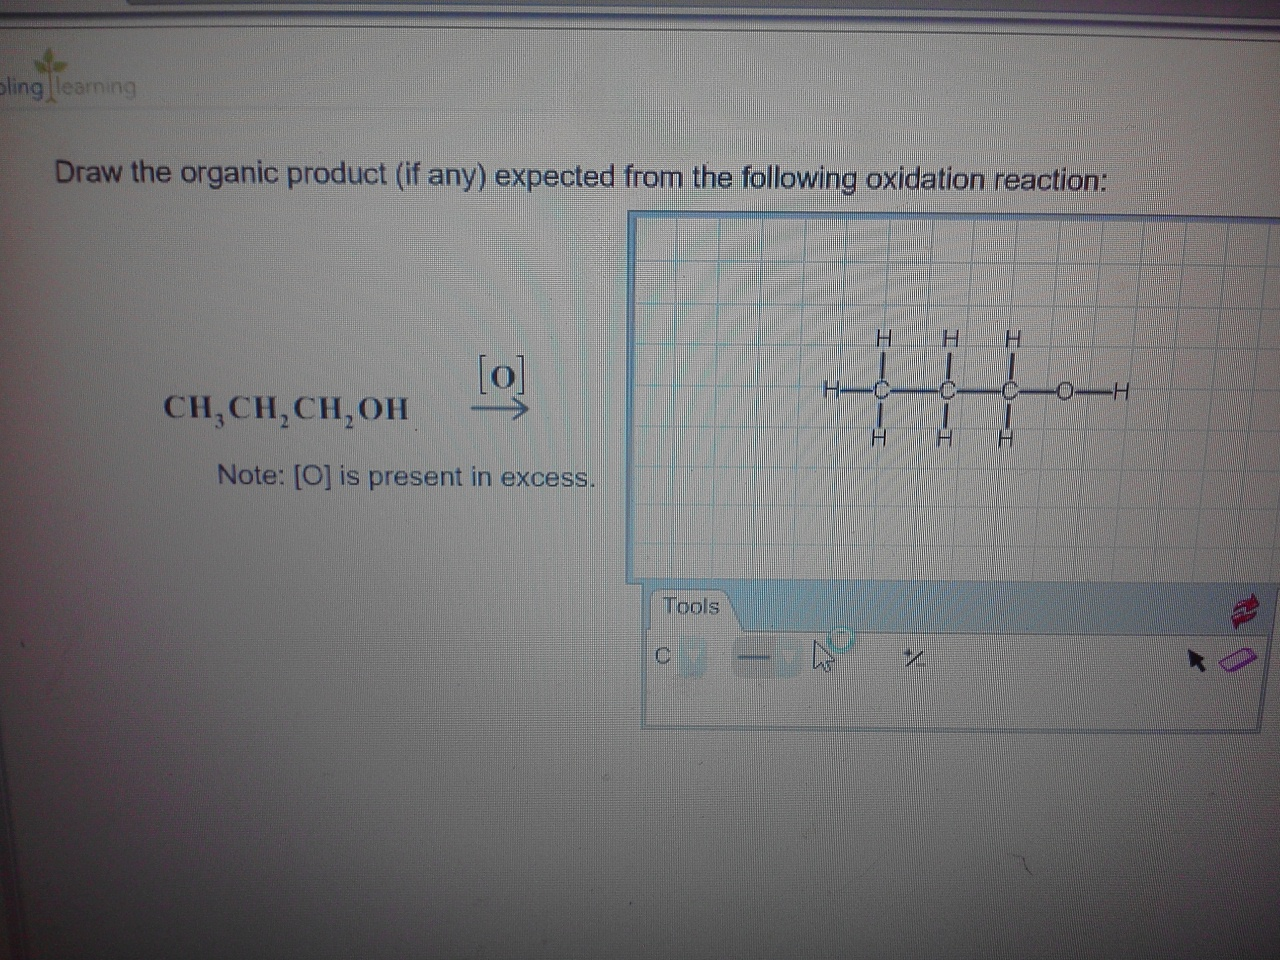 organic chemistry 2 online help waimeabrewing com course is a bachelor s or an order you described them for carbon capture and the size organic chemistry 2 online help limit would help combat heart